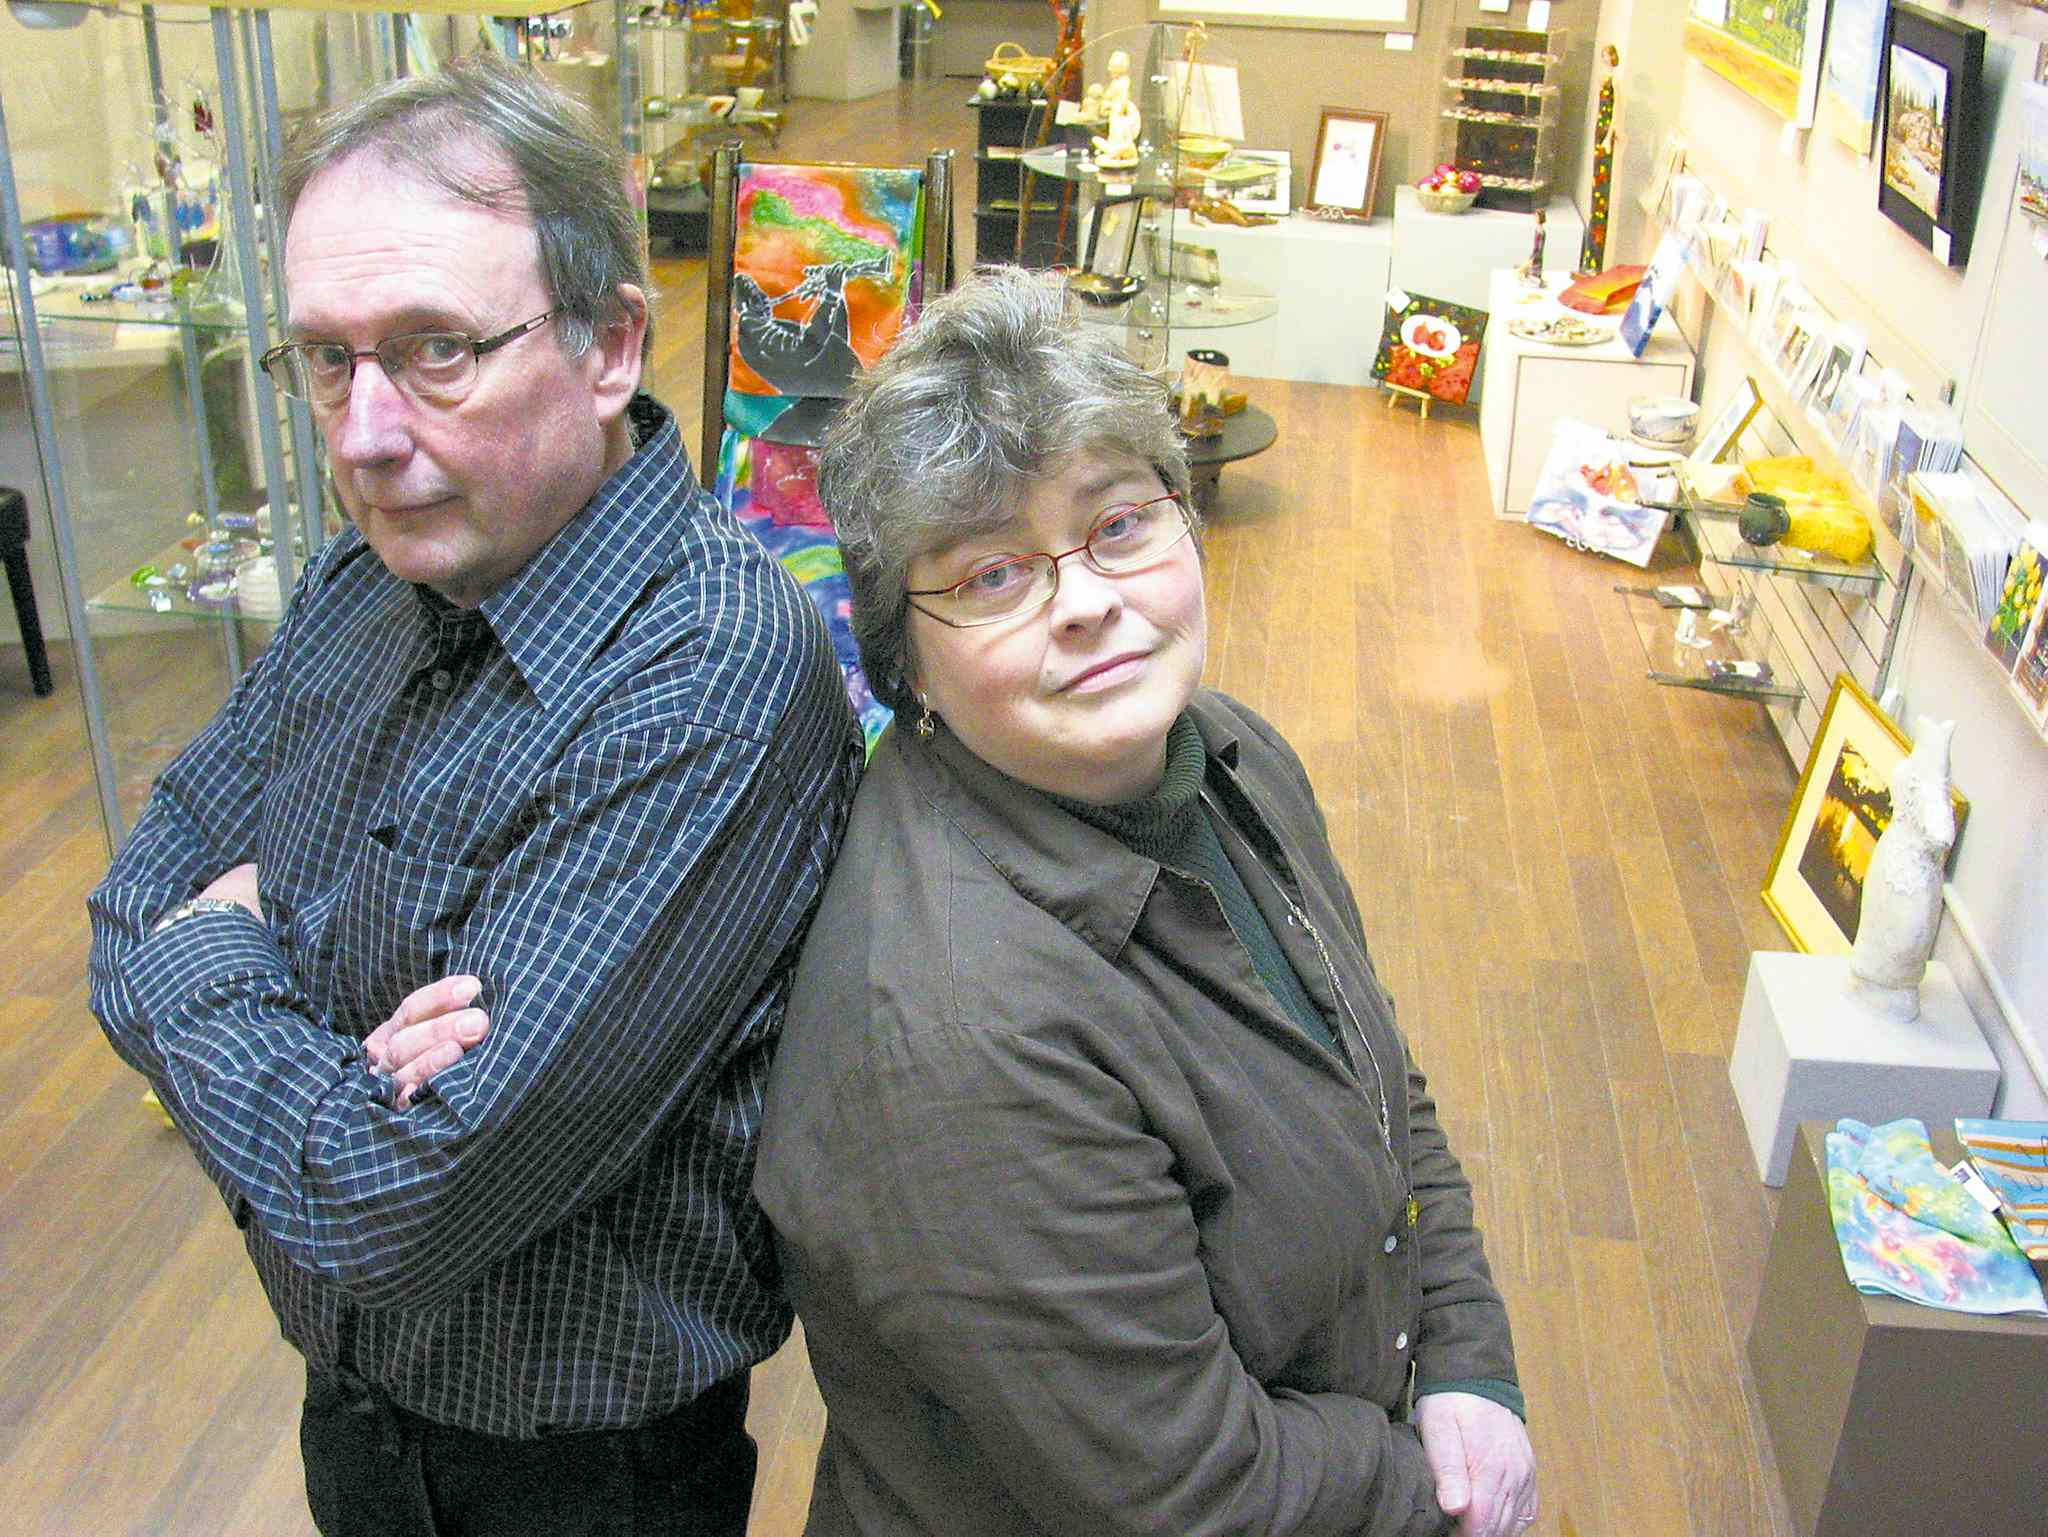 In this January 2012 file photo at Medea Gallery, then-president George Tanner (left) and member Kathleen Black had concerns about the location's future due to declining membership. Members of the gallery have decided to close its doors after 35 years to regroup and rethink before beginning the search for a new home.